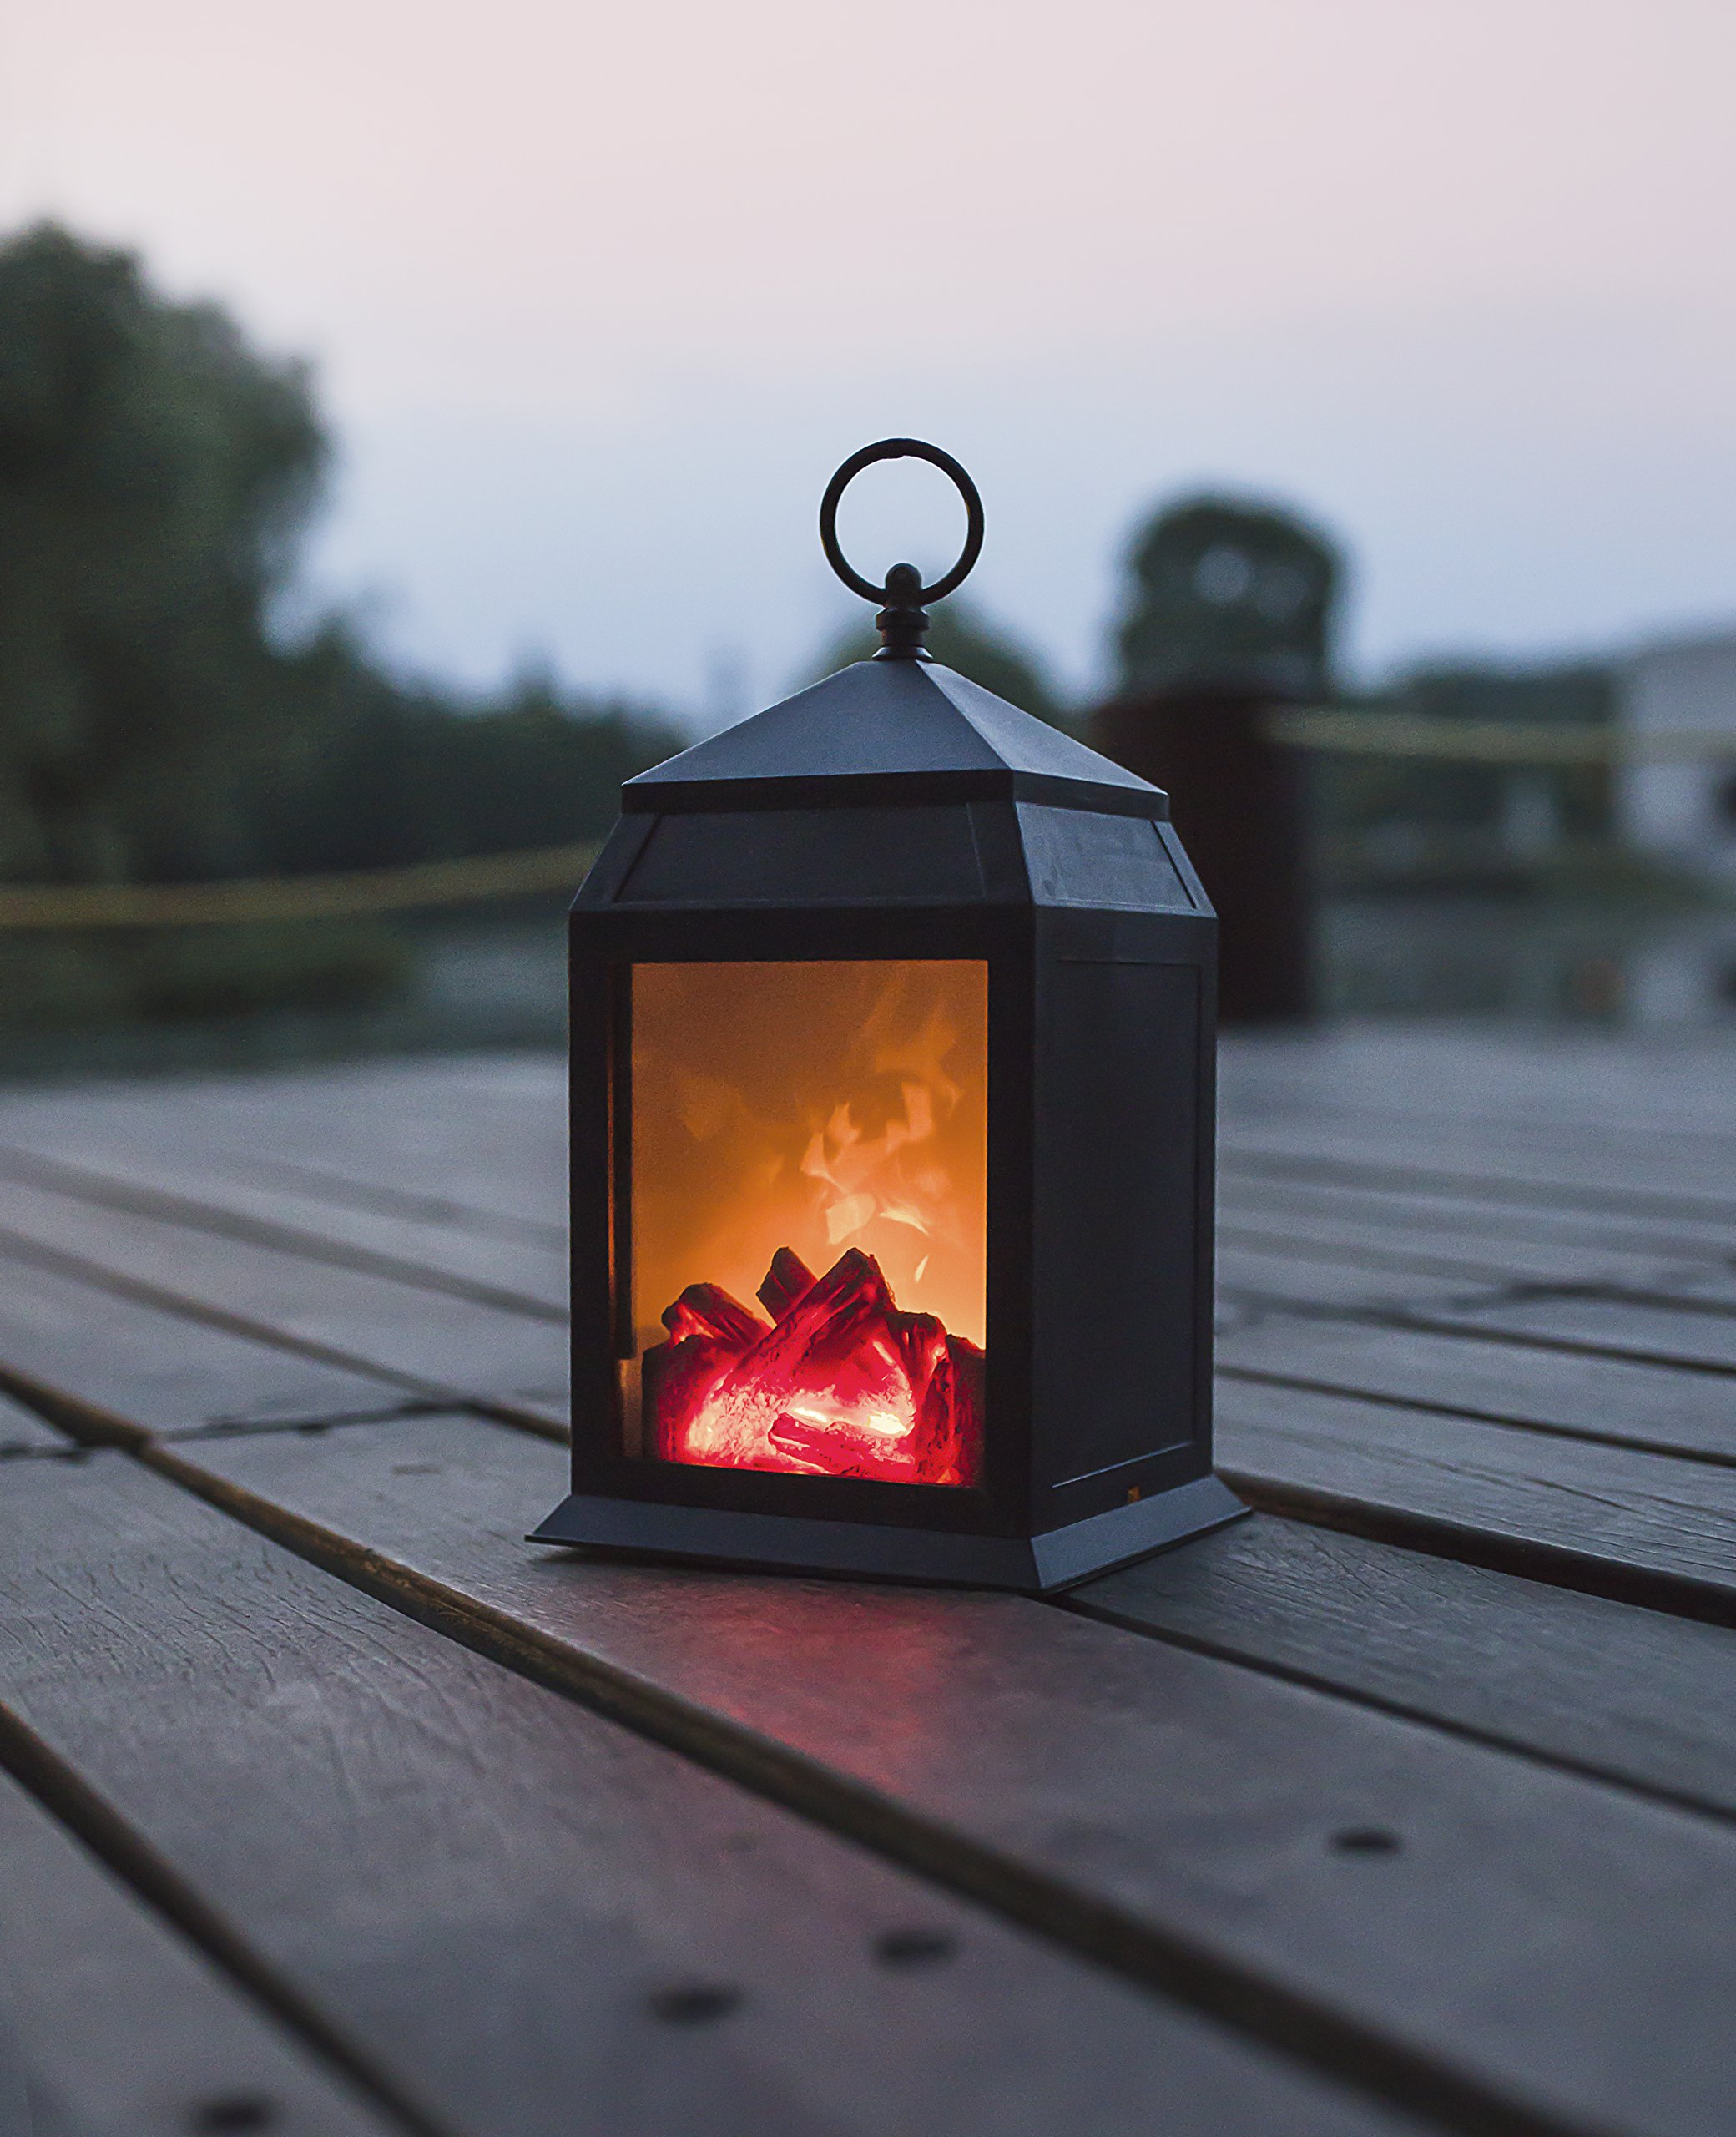 Decorative Realistic Fireplace Lantern and Battery Operated USB Operated 6 Hour Timer Included Tabletop Fireplace Lantern Indoor/Outdoor Fireplace Lamp 1 PC Black by decanit